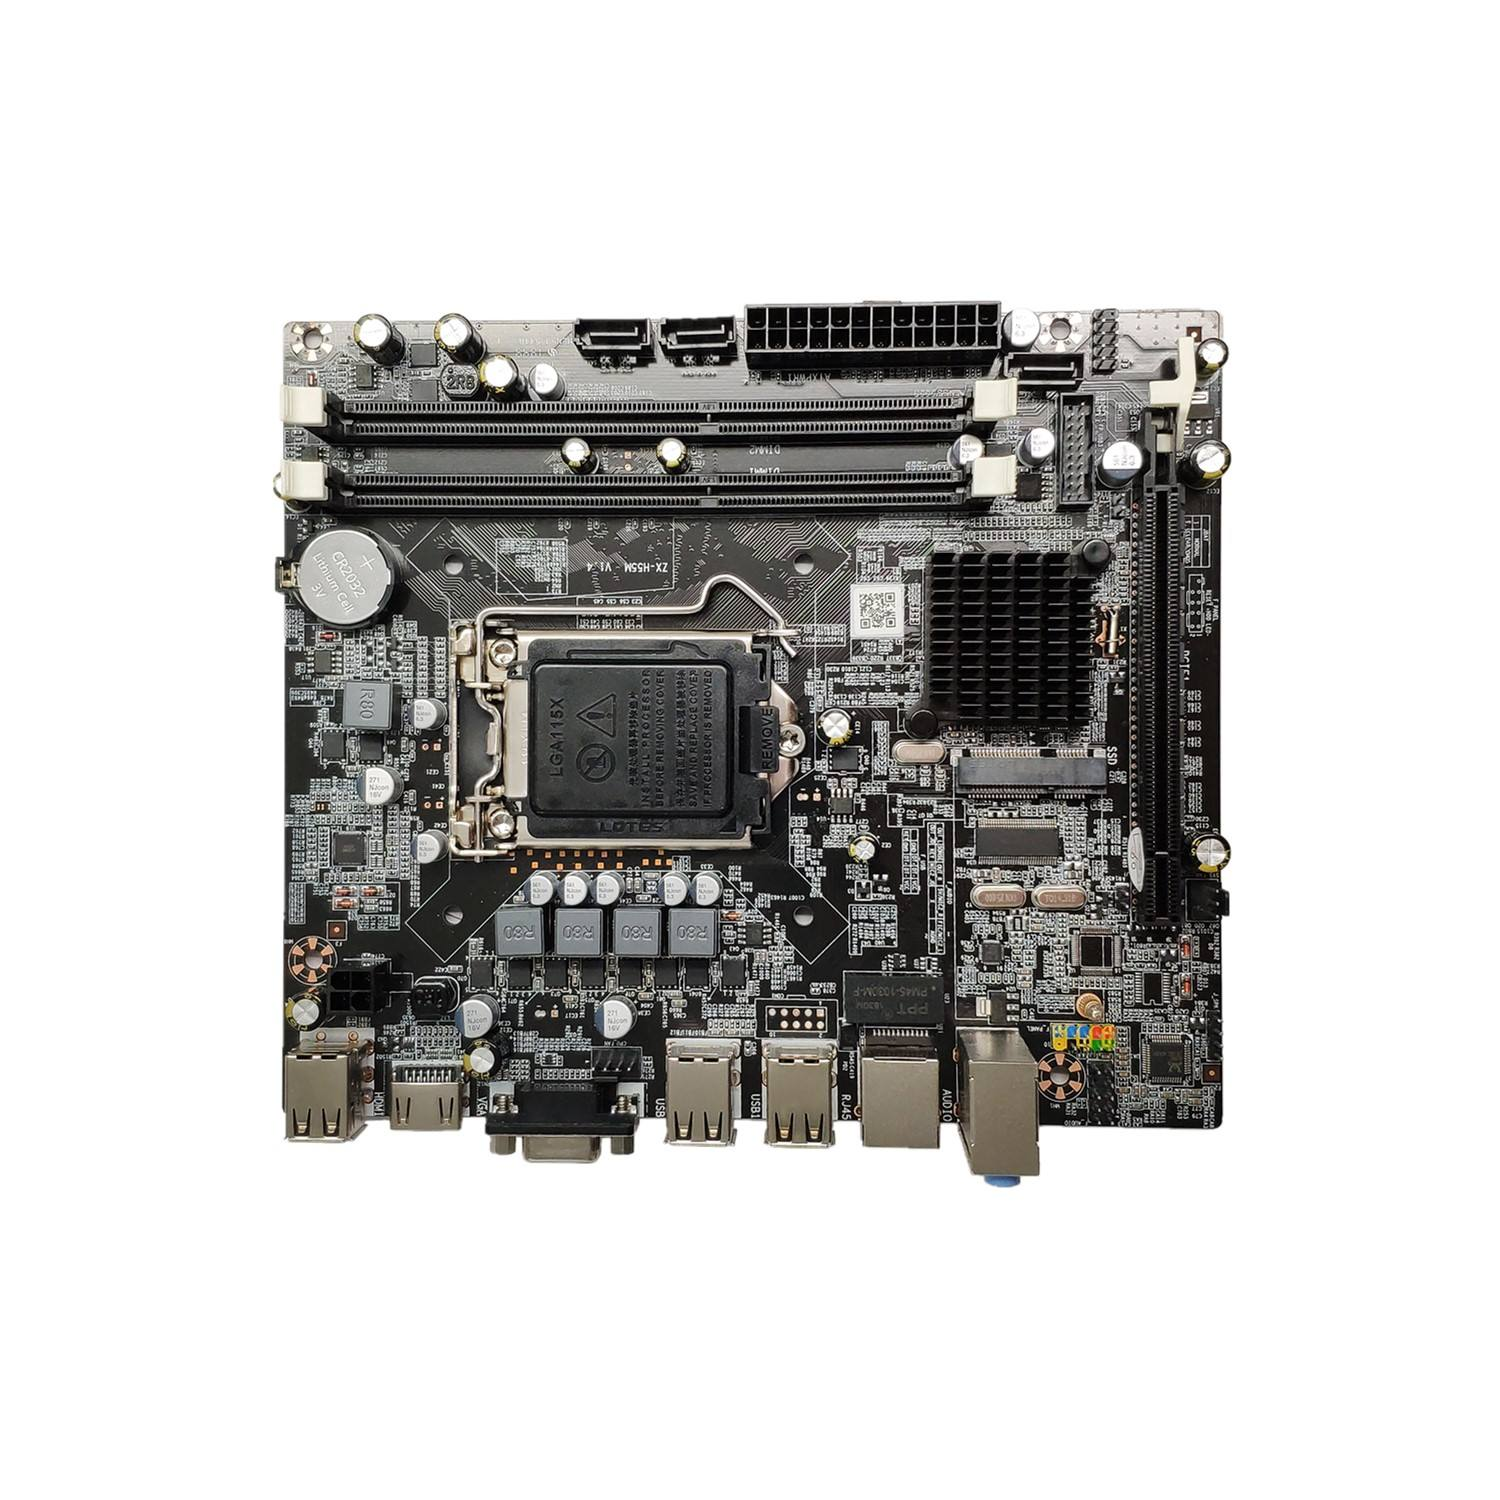 Hight Quality For Asus H55/USB3 Desktop Motherboard H55 LGA 1156 DDR3 ATX 100% Fully Test